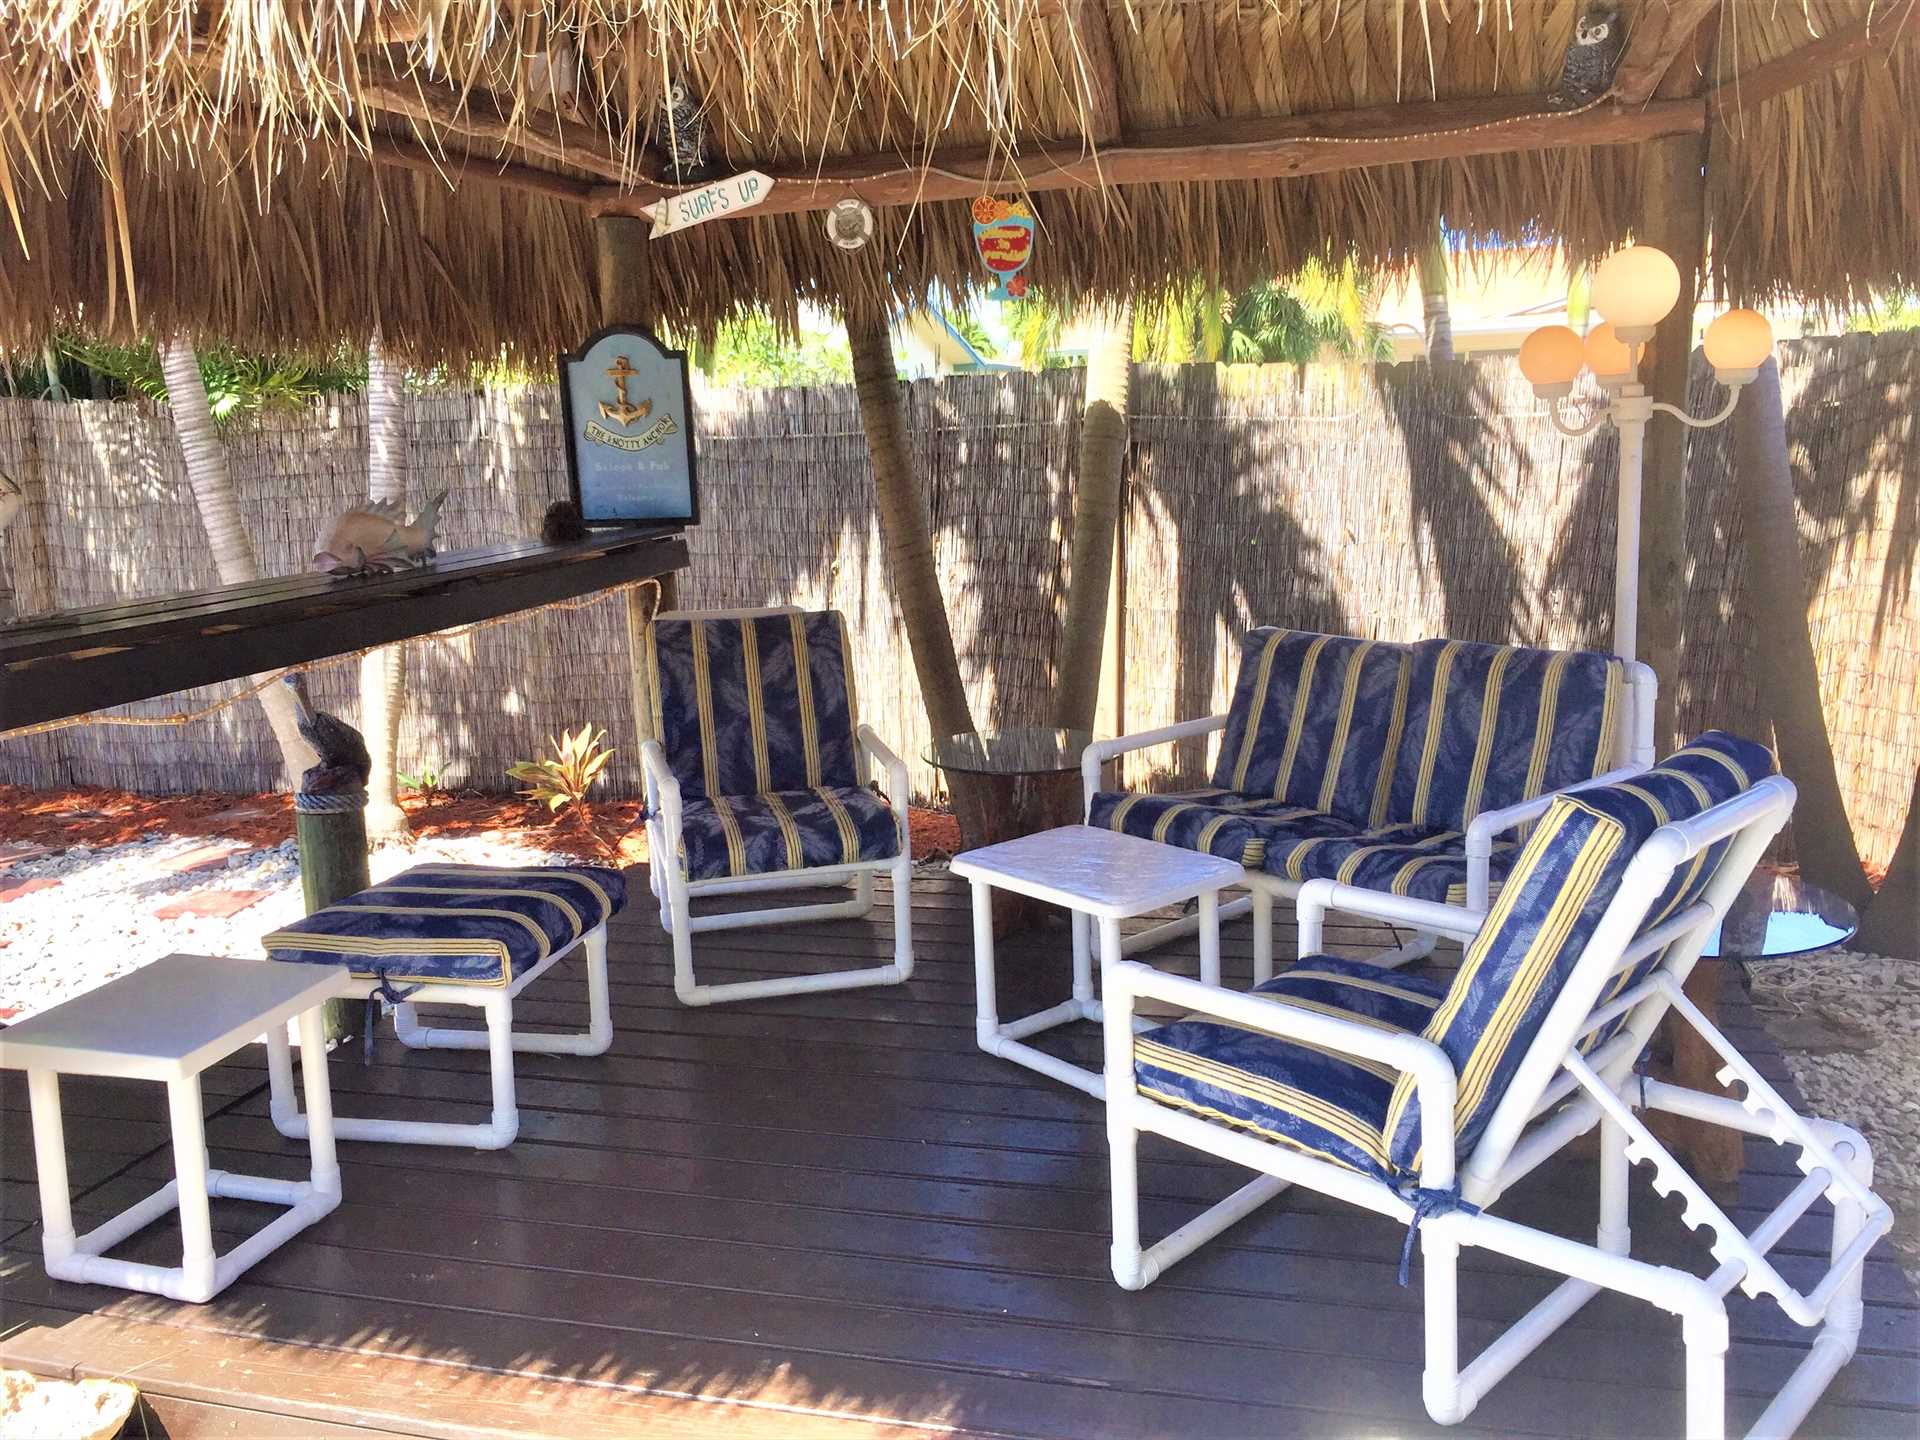 Relax in the Tiki Hut with your favorite adult beverage - It